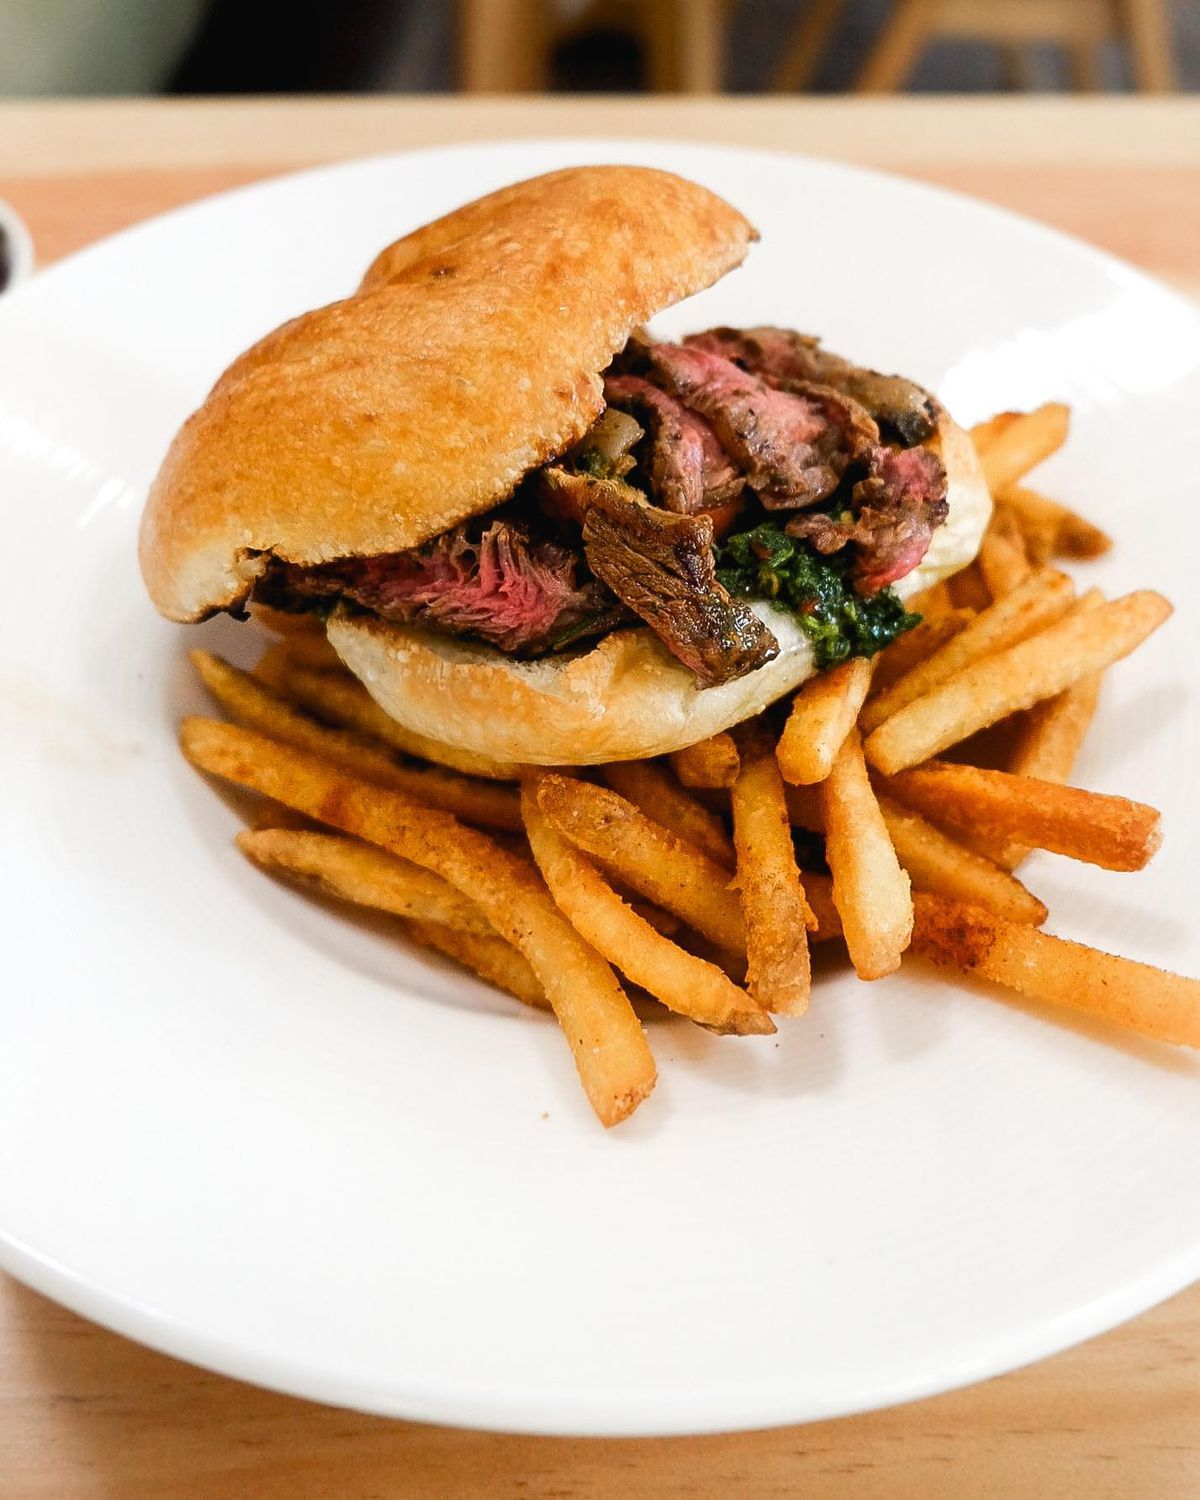 Lomito sandwich with sliced beef topped with salsa criolla and chimichurri aioli and surrounded by classic cut French fries